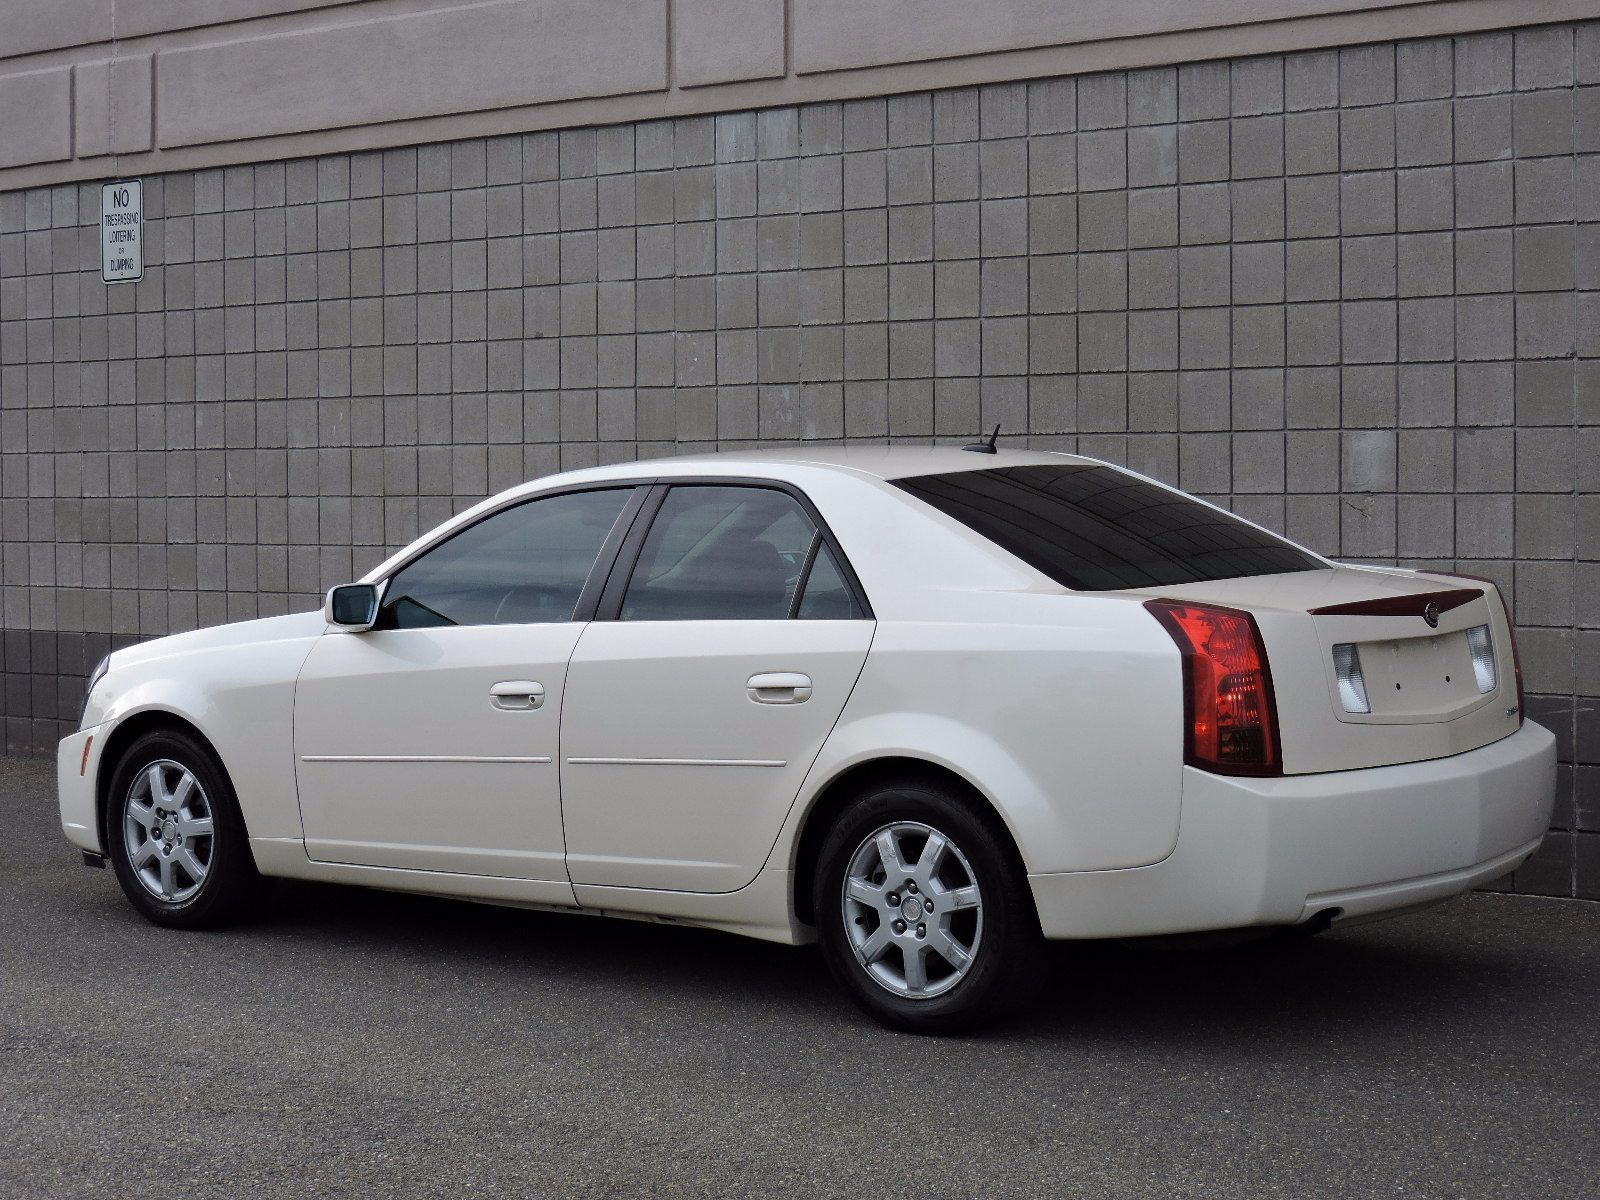 Used 2005 Cadillac CTS at Auto House USA Saugus